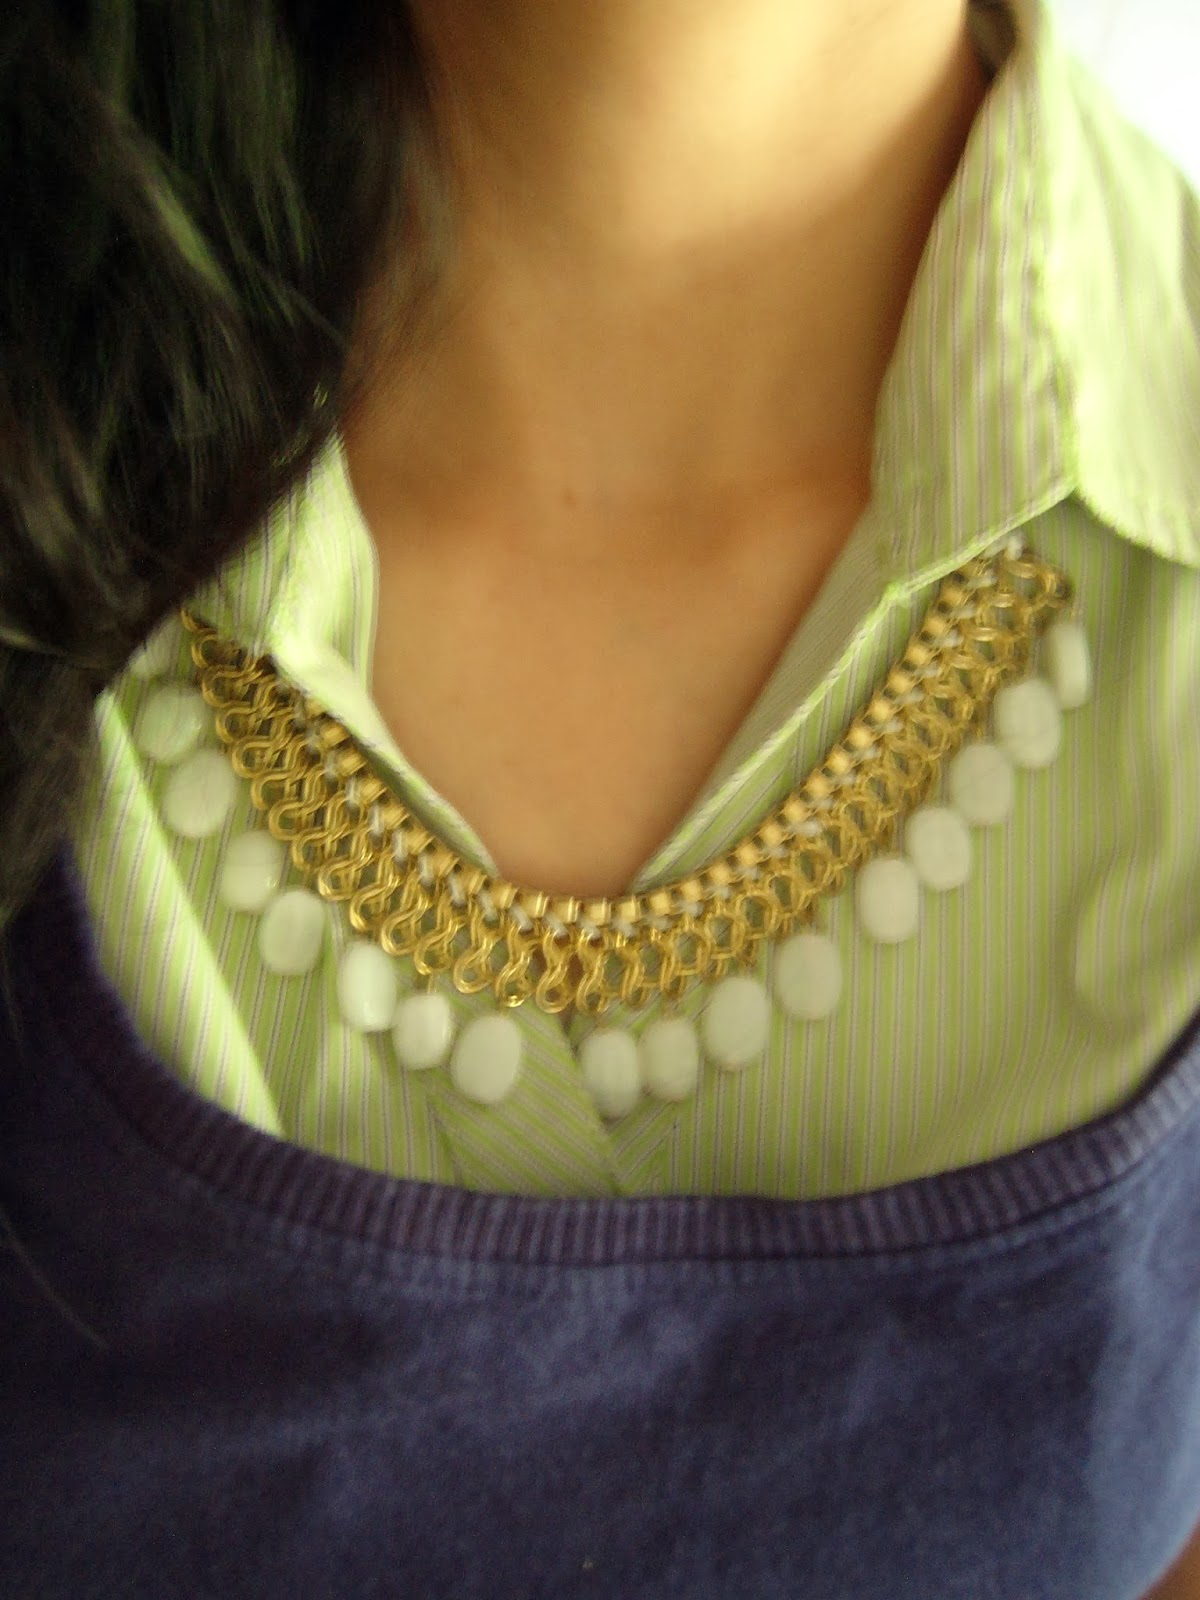 street shopping in mumbai, statement necklace, white necklace, what to buy in mumbai, thrifty thursday